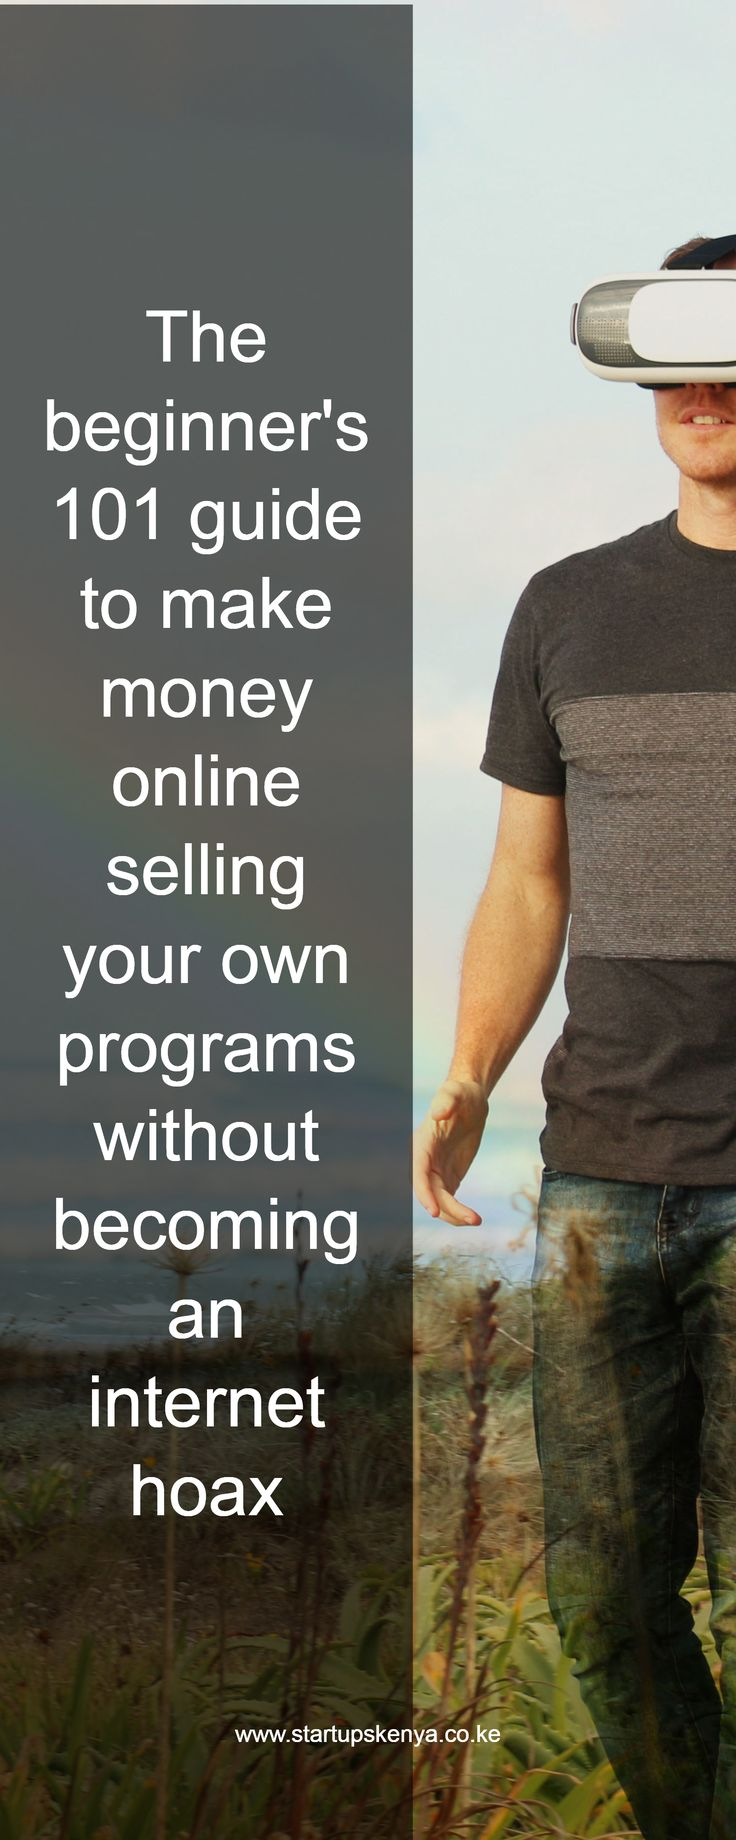 The beginner's 101 guide to make money online selling your own programs without becoming an internet hoax / www.startupskenya.co.ke